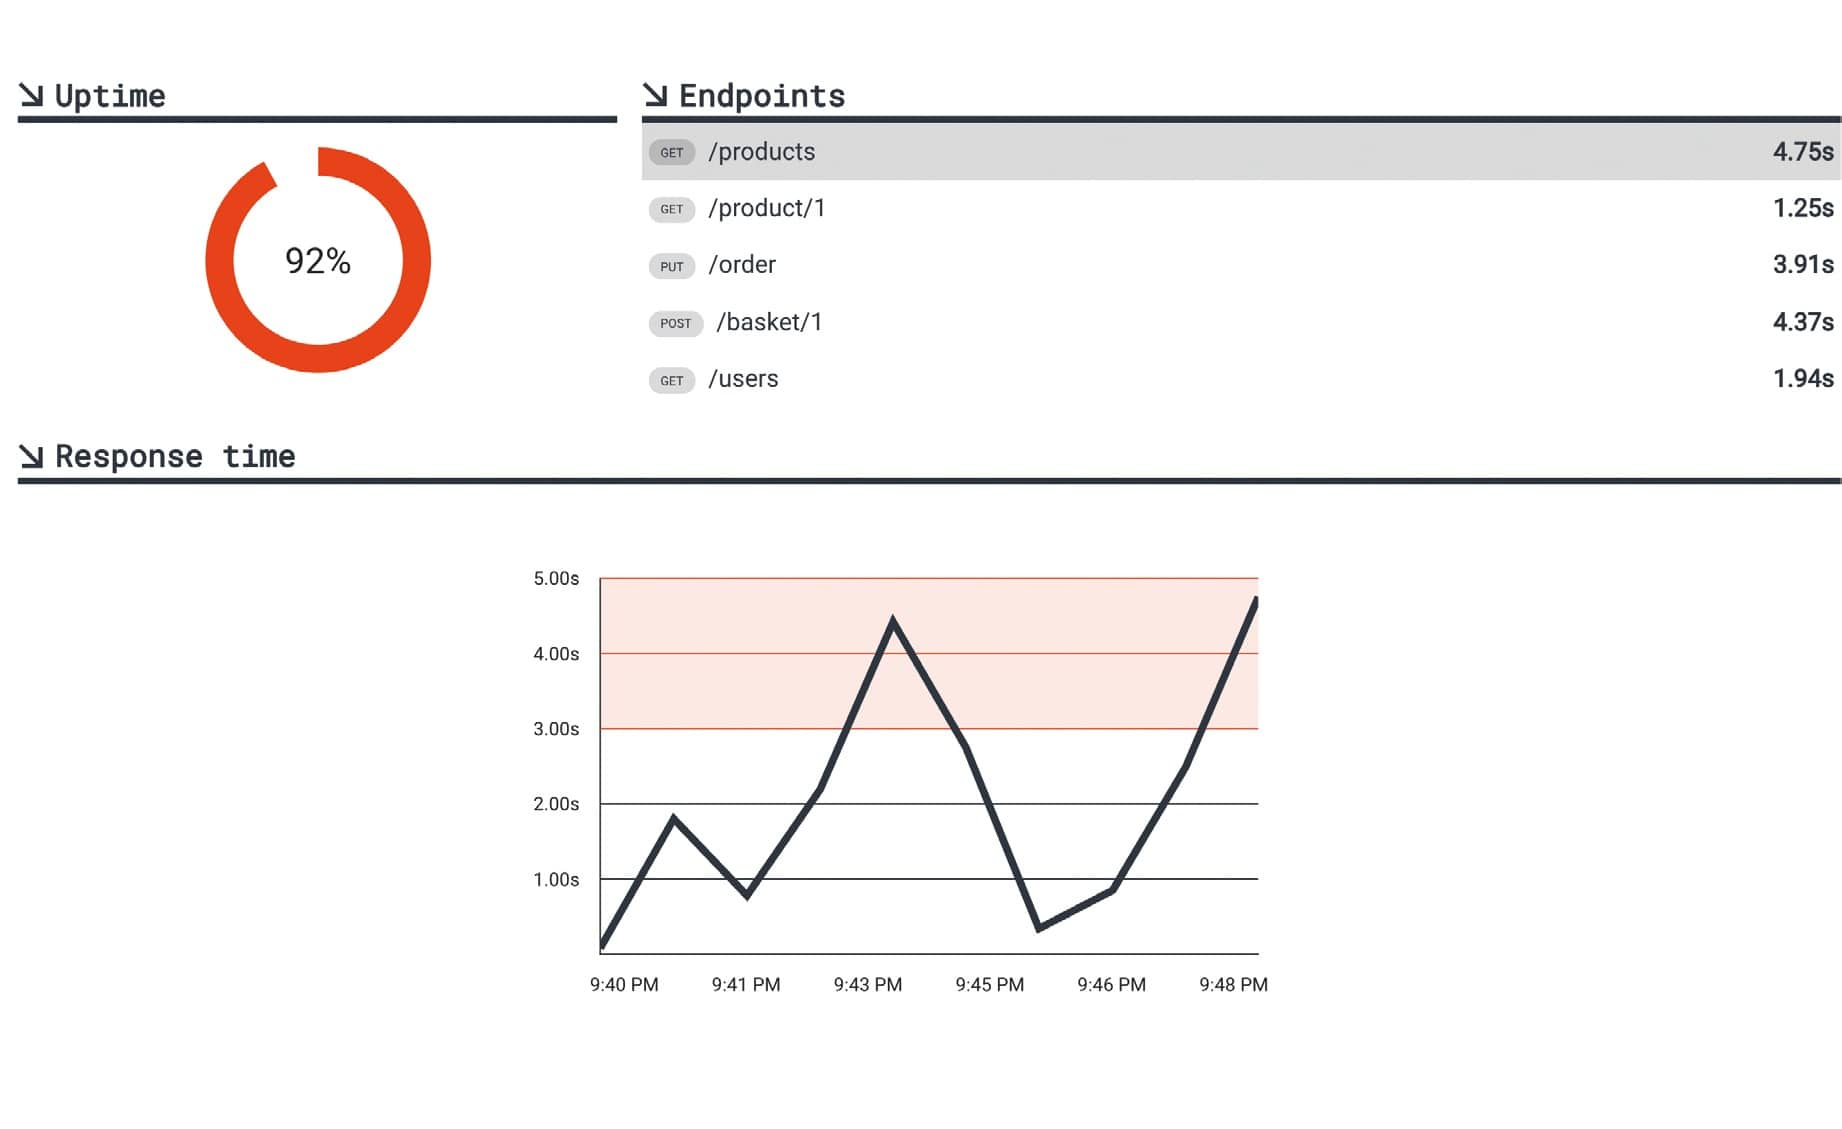 GENERATE DYNAMIC CHARTS WITH VICTORY